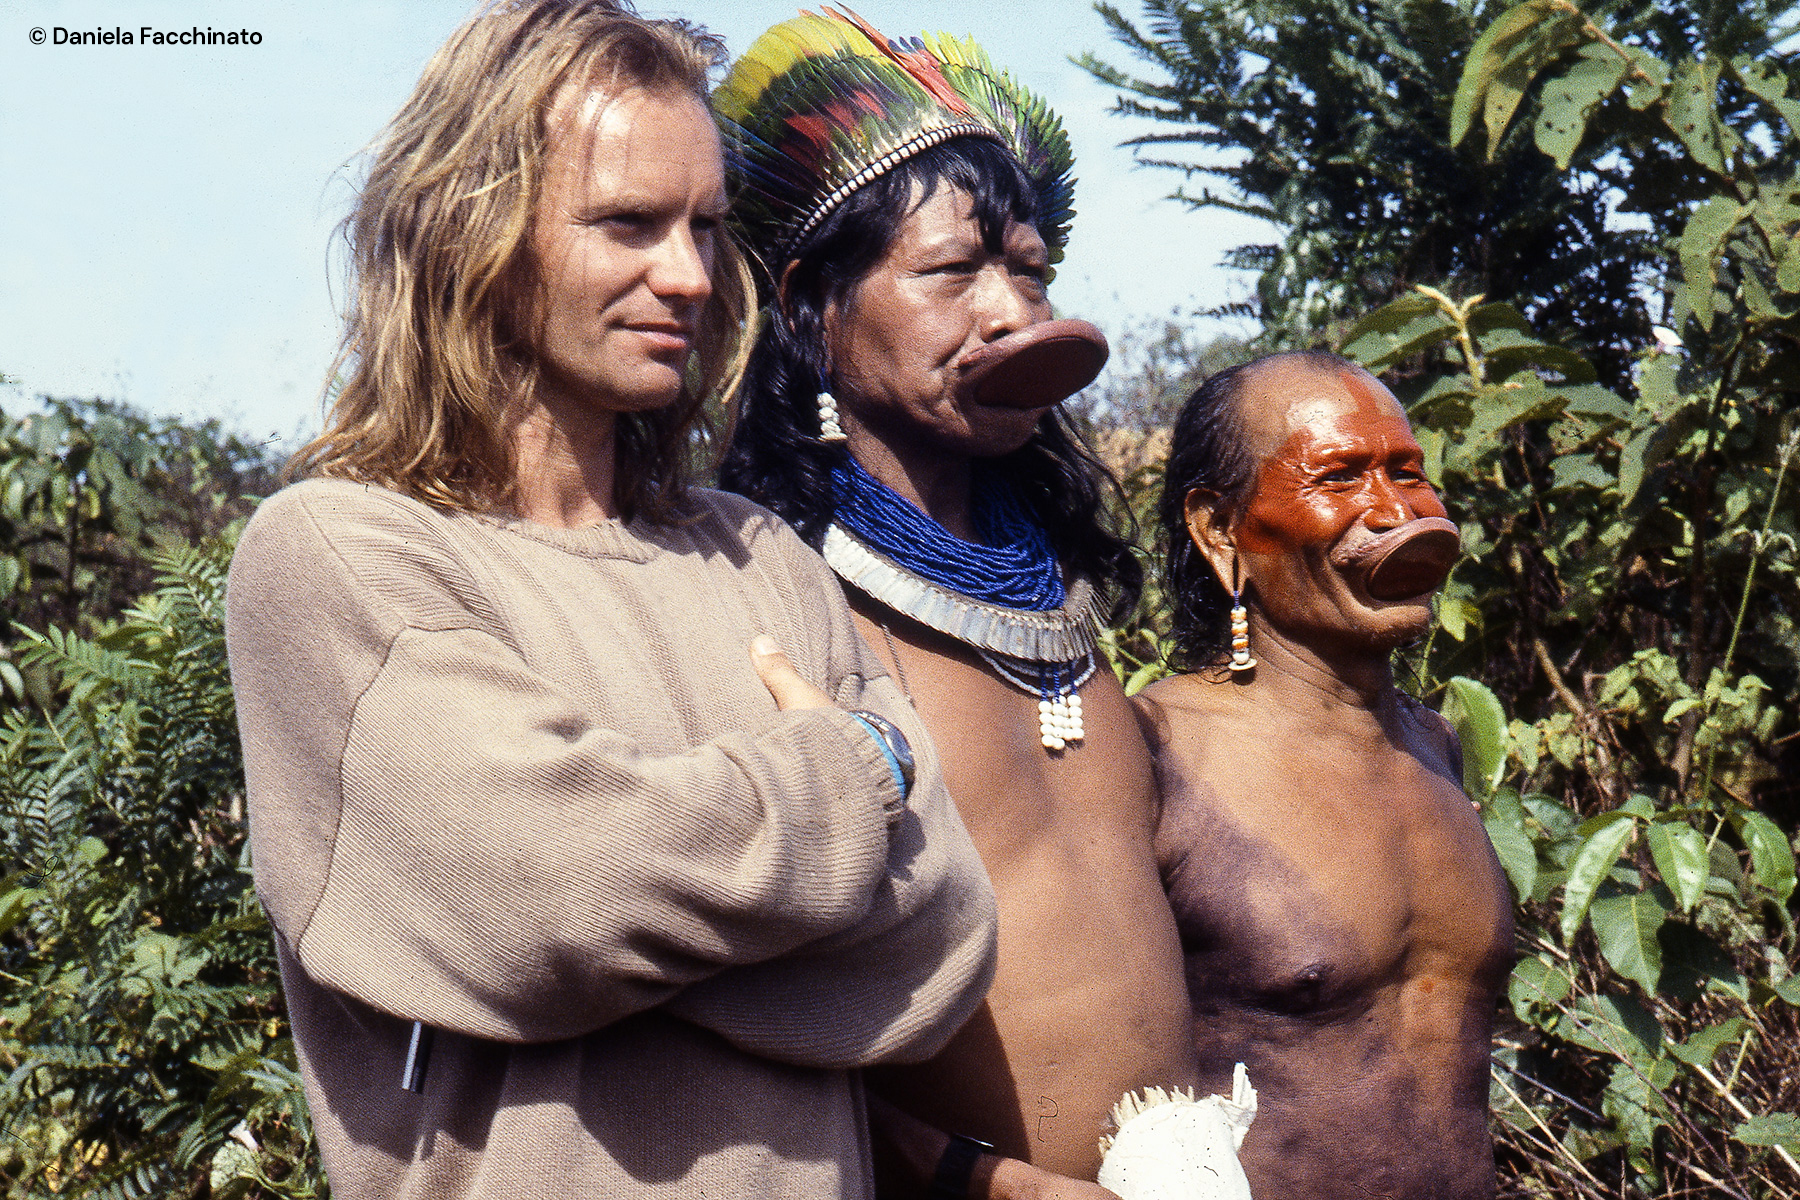 Amazonia, Xingù. Singer Sting with chief Raoni and another tribe dignitary from Kaiapò people